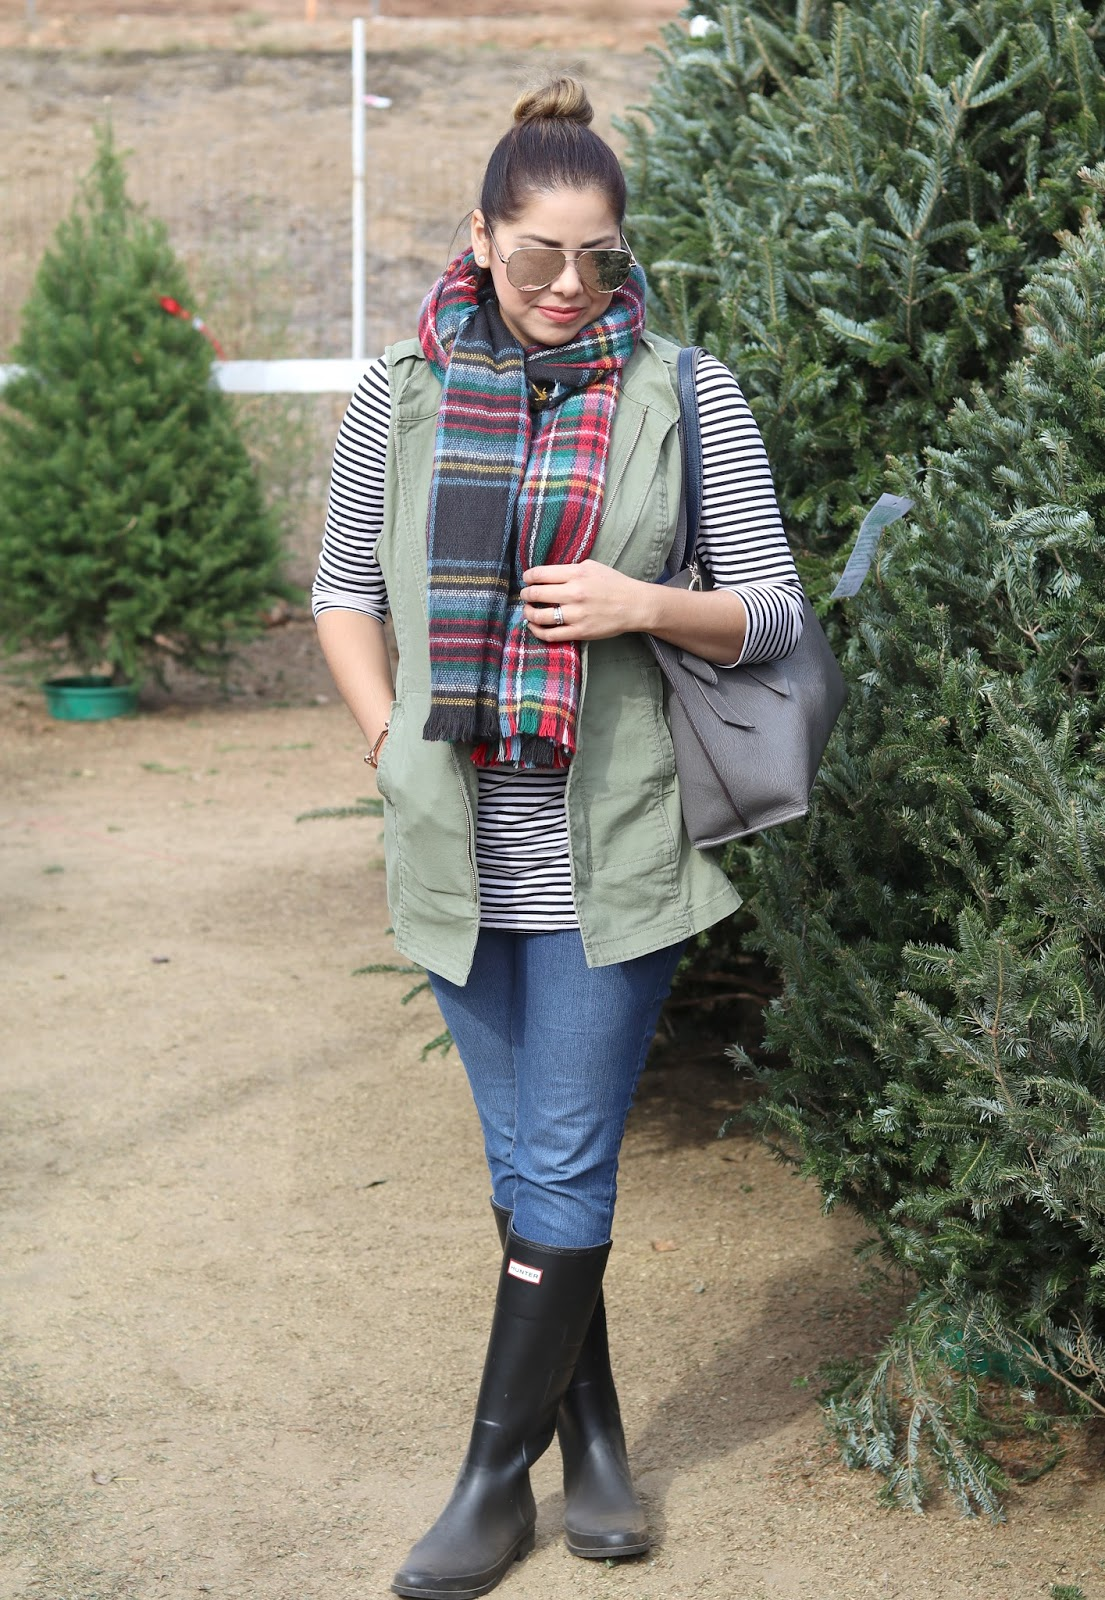 Casual Holiday Outift, San Diego Holidays, San Diego Fashion Blogger in winter